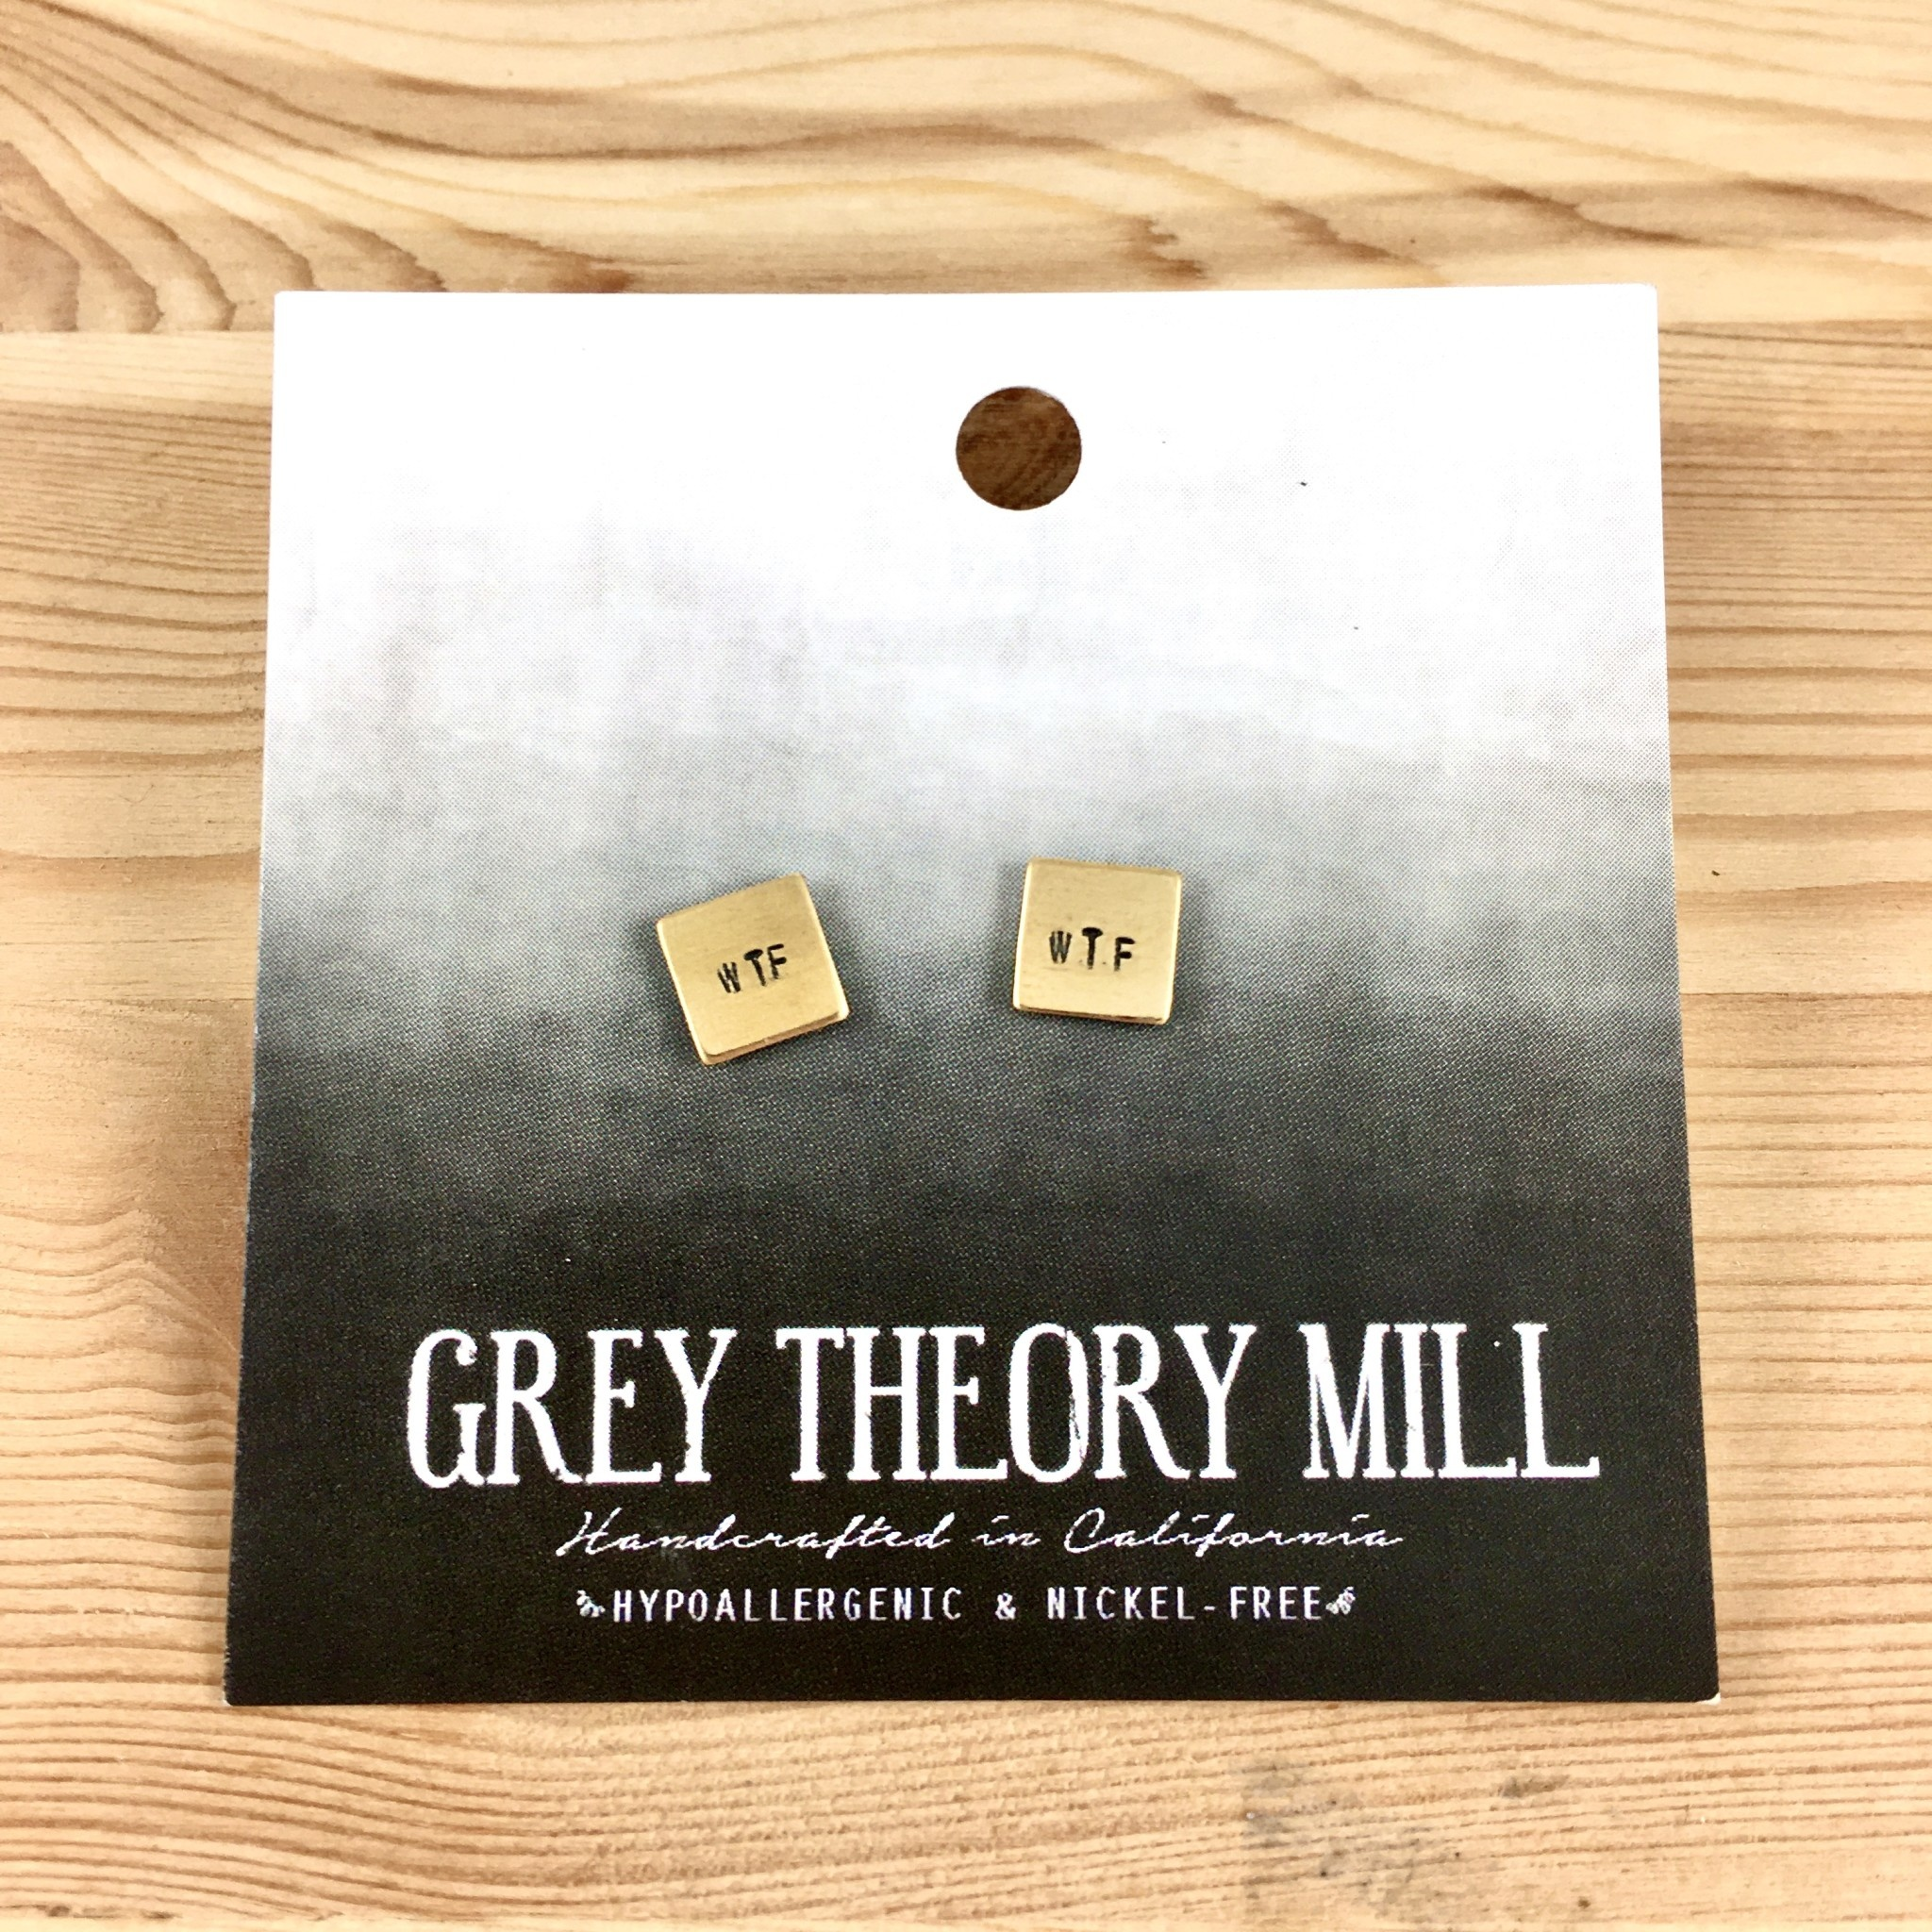 Grey Theory Mill WTF Stamped Stud Earrings